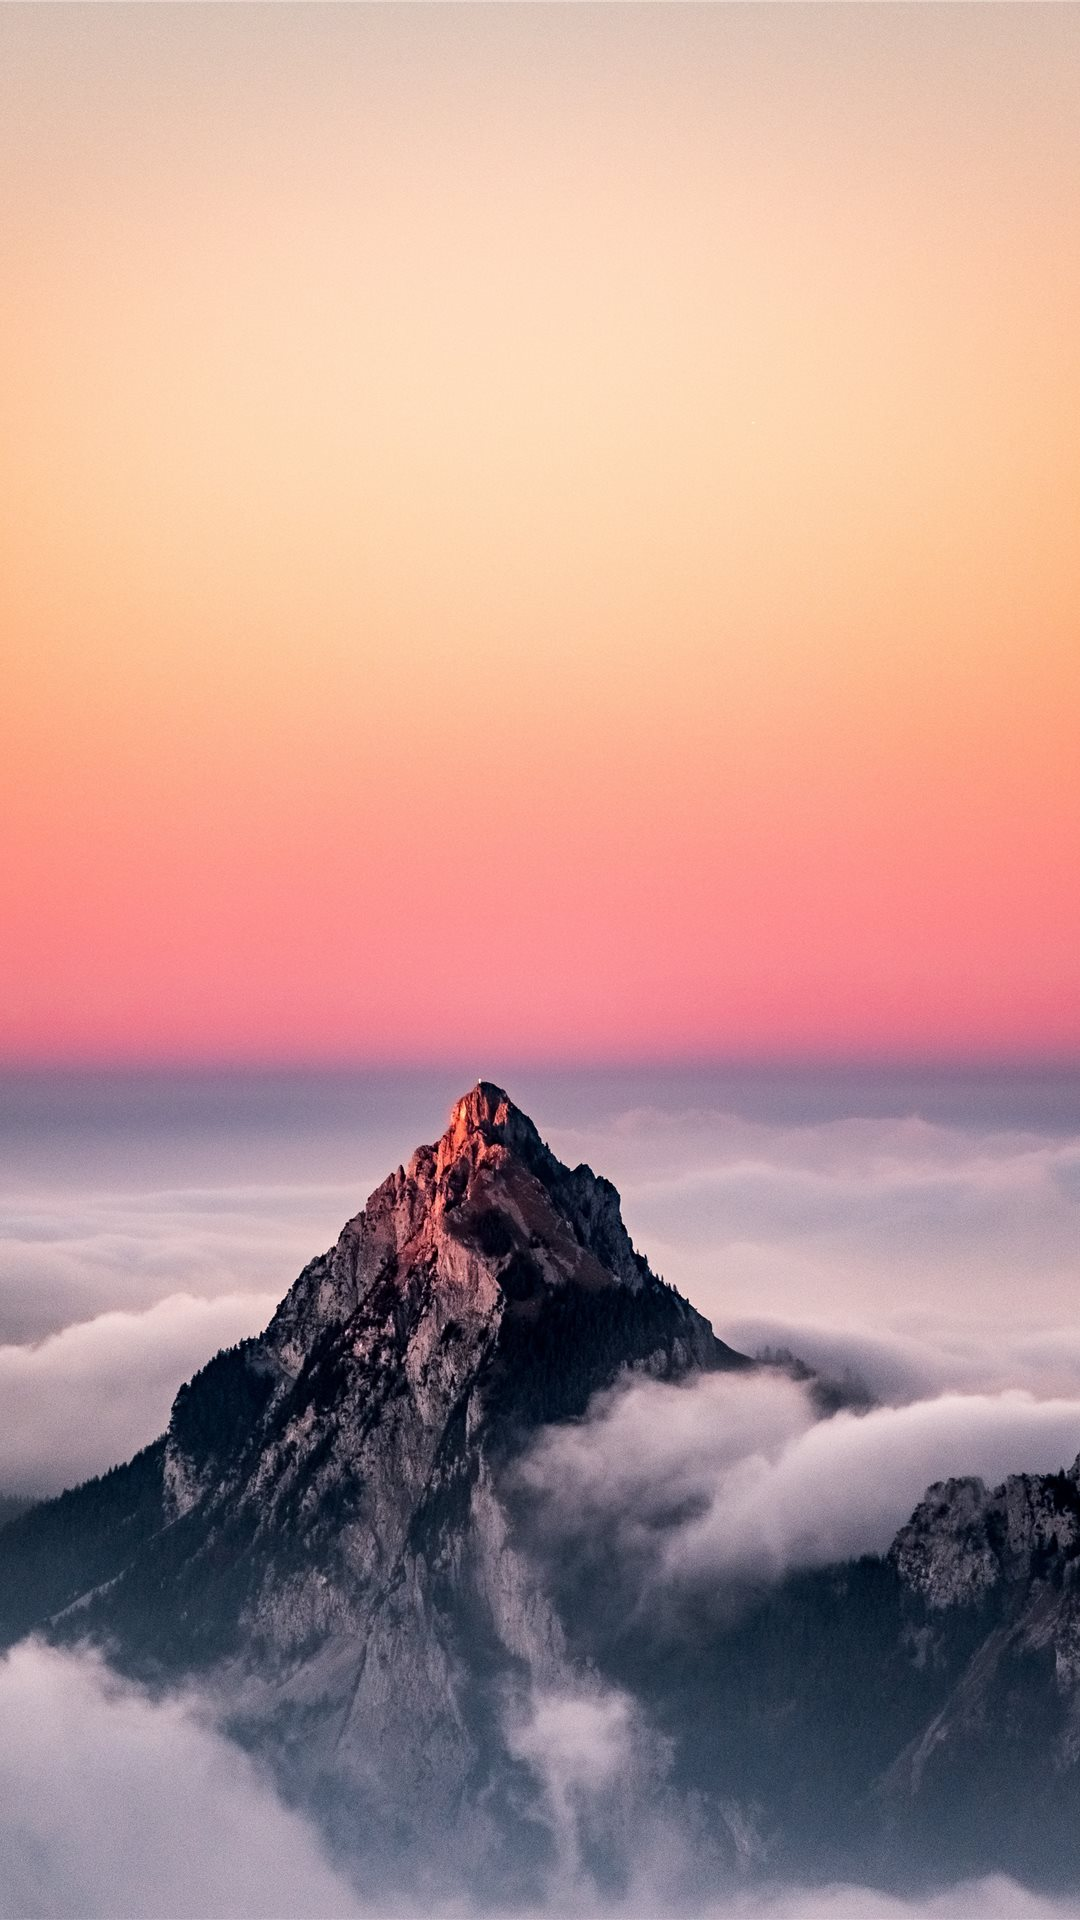 Beautiful Mountain Sunset Sky Iphone Wallpaper